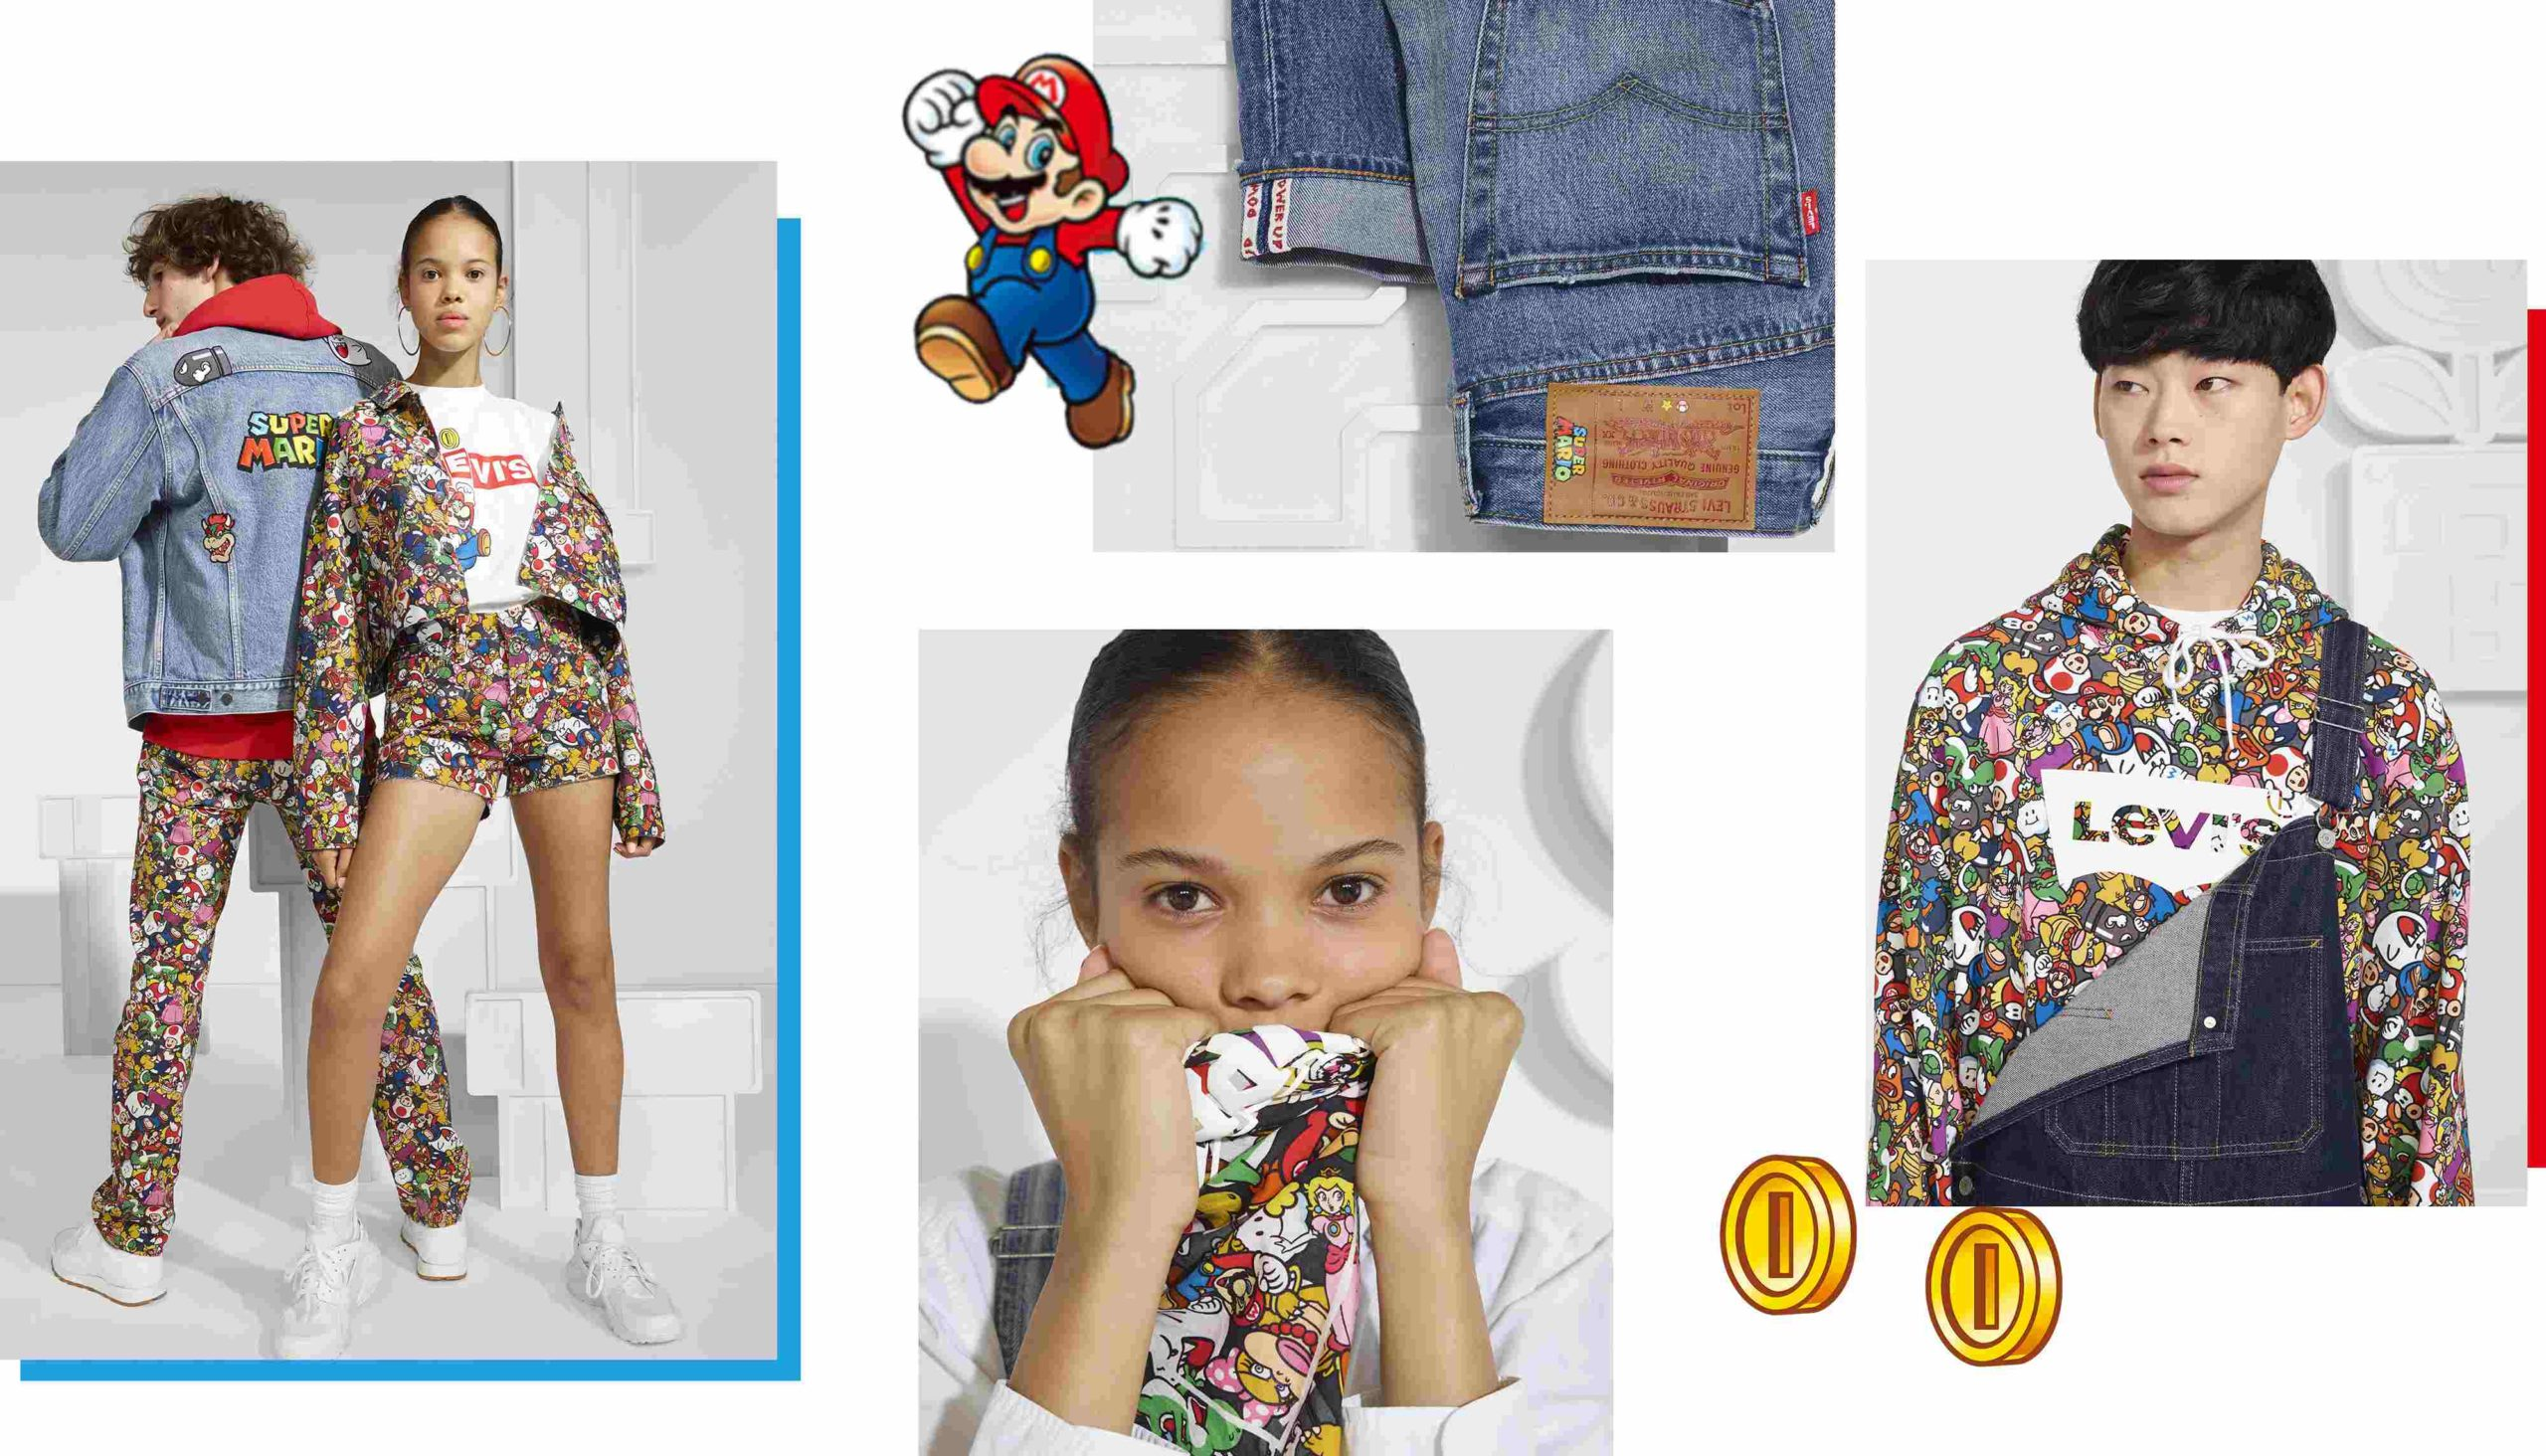 Levis Super Mario Range South Africa